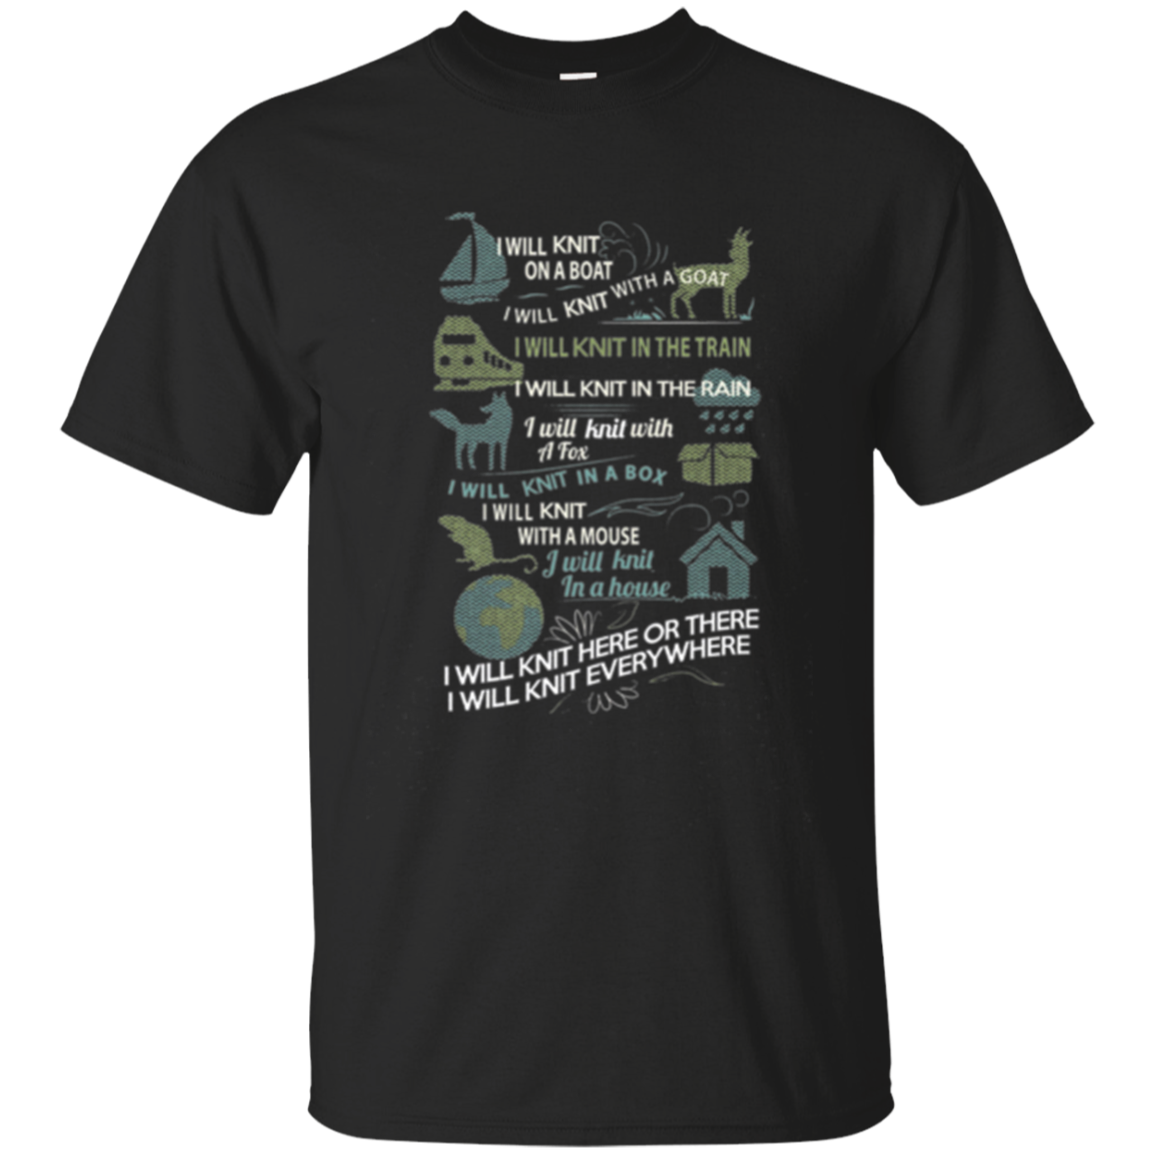 Knitting TShirt-I Will Knit On A Boat,I Knit with a Goat ...